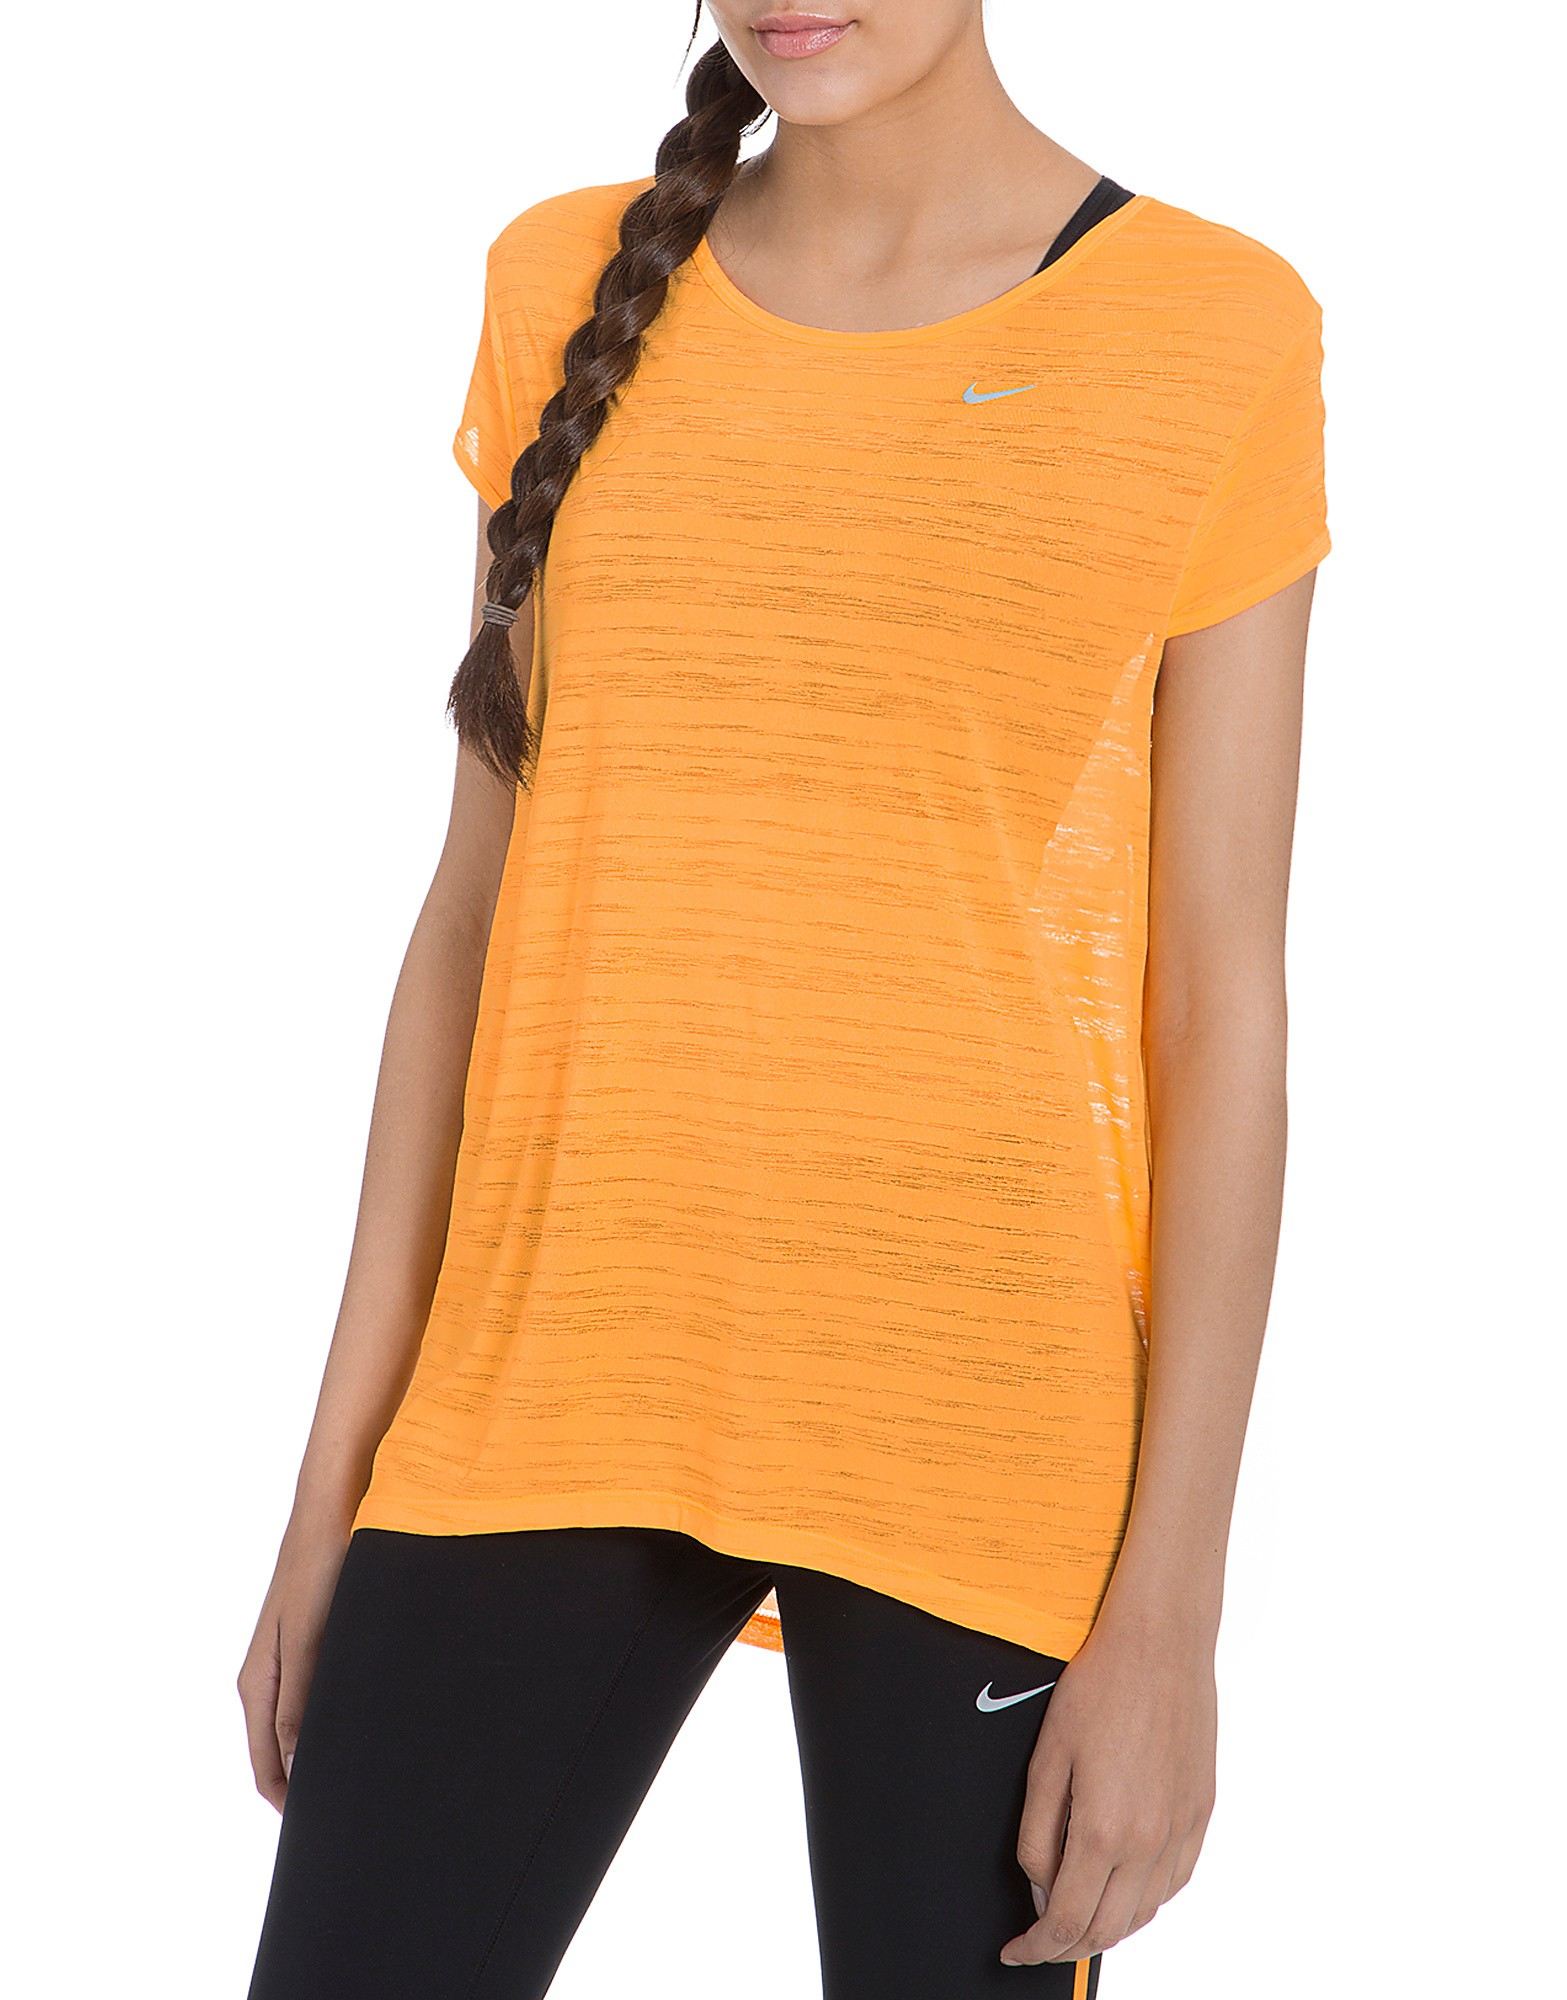 Nike Dri FIT Breeze Stripe T-Shirt product image